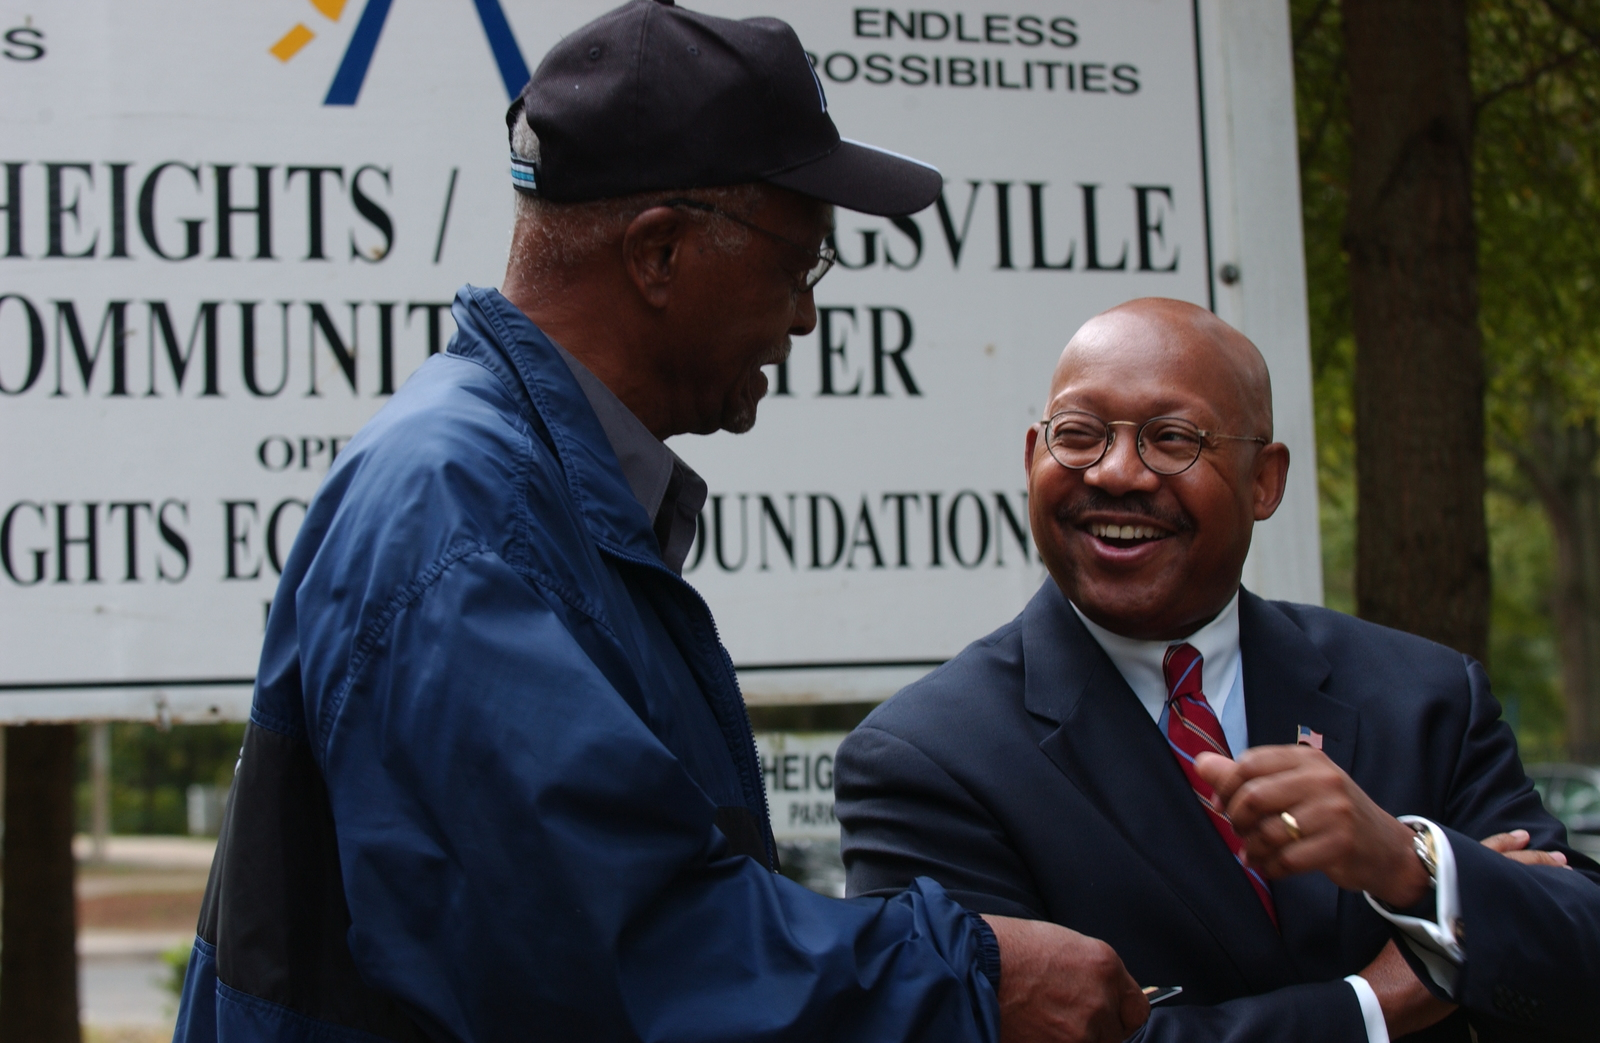 Visit of Secretary Alphonso Jackson to Charlotte, North Carolina,  where he toured the Grier Heights-Billingsville Community with North Carolina Congressman Robin Hayes and Grier Heights Economic Development Foundation Director George Wallace,  among others